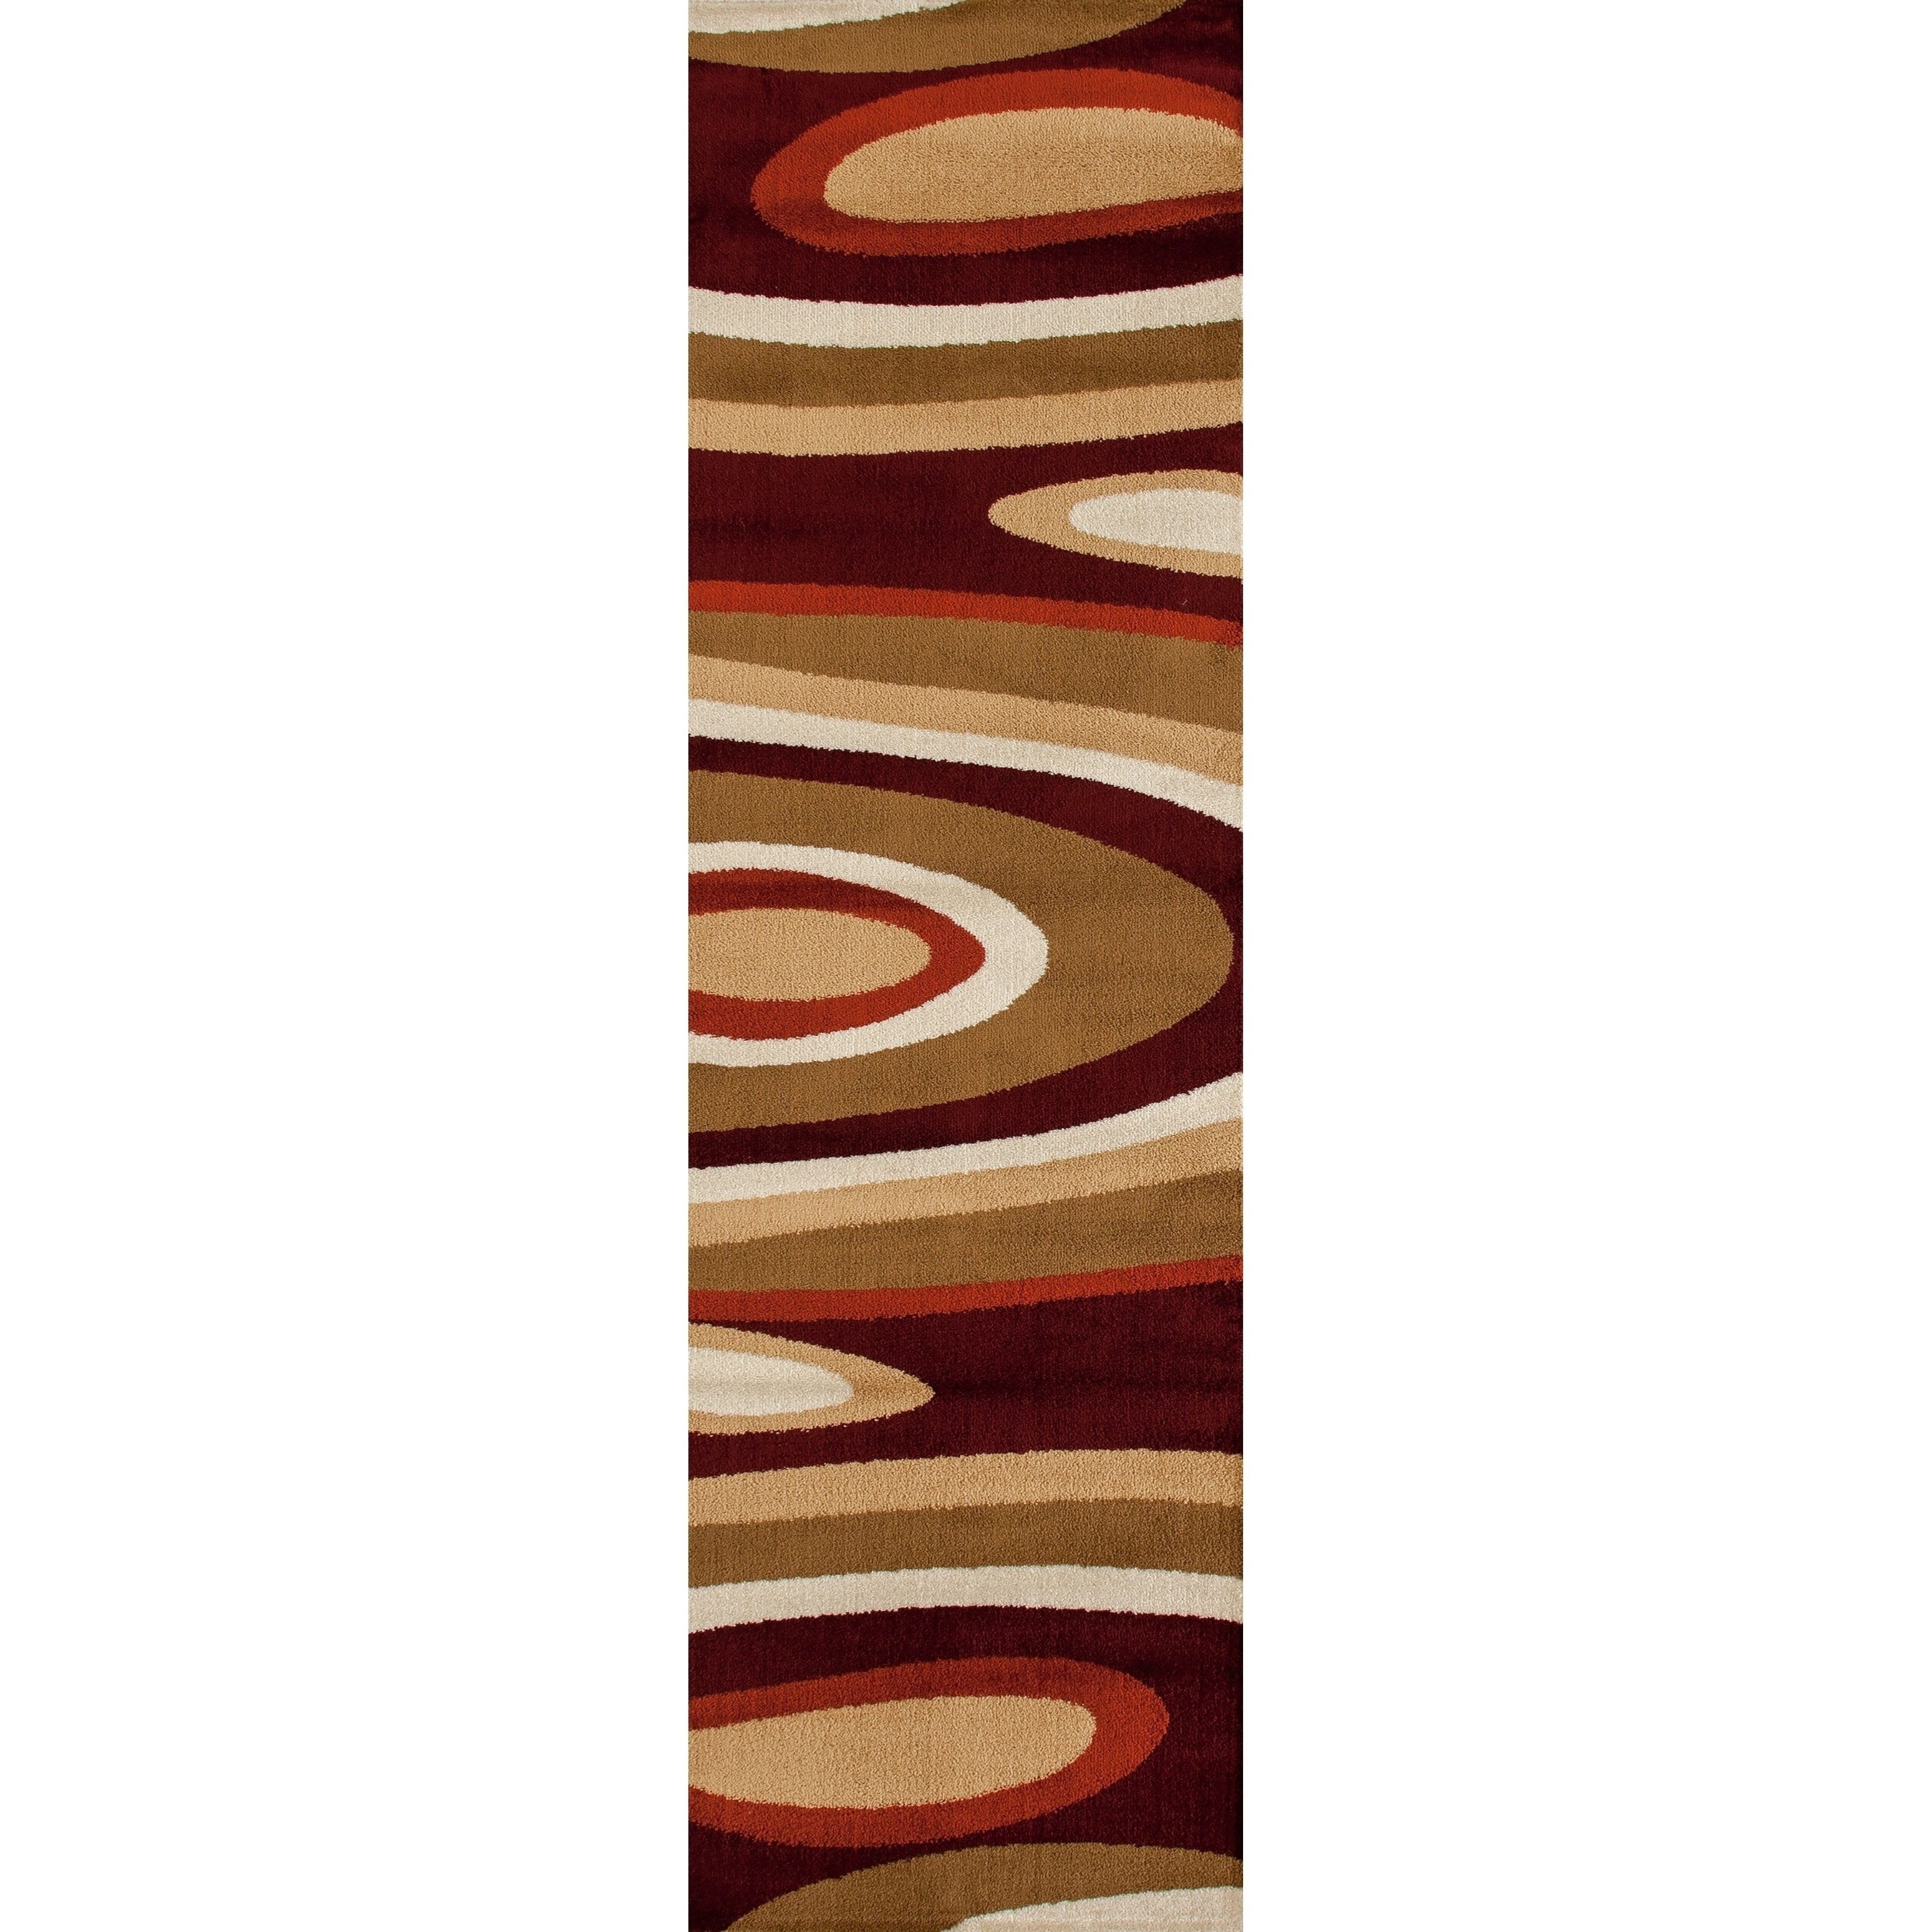 World Rug Gallery Abstract Contemporary Modern Gray 2' x 3' Indoor Area Rug